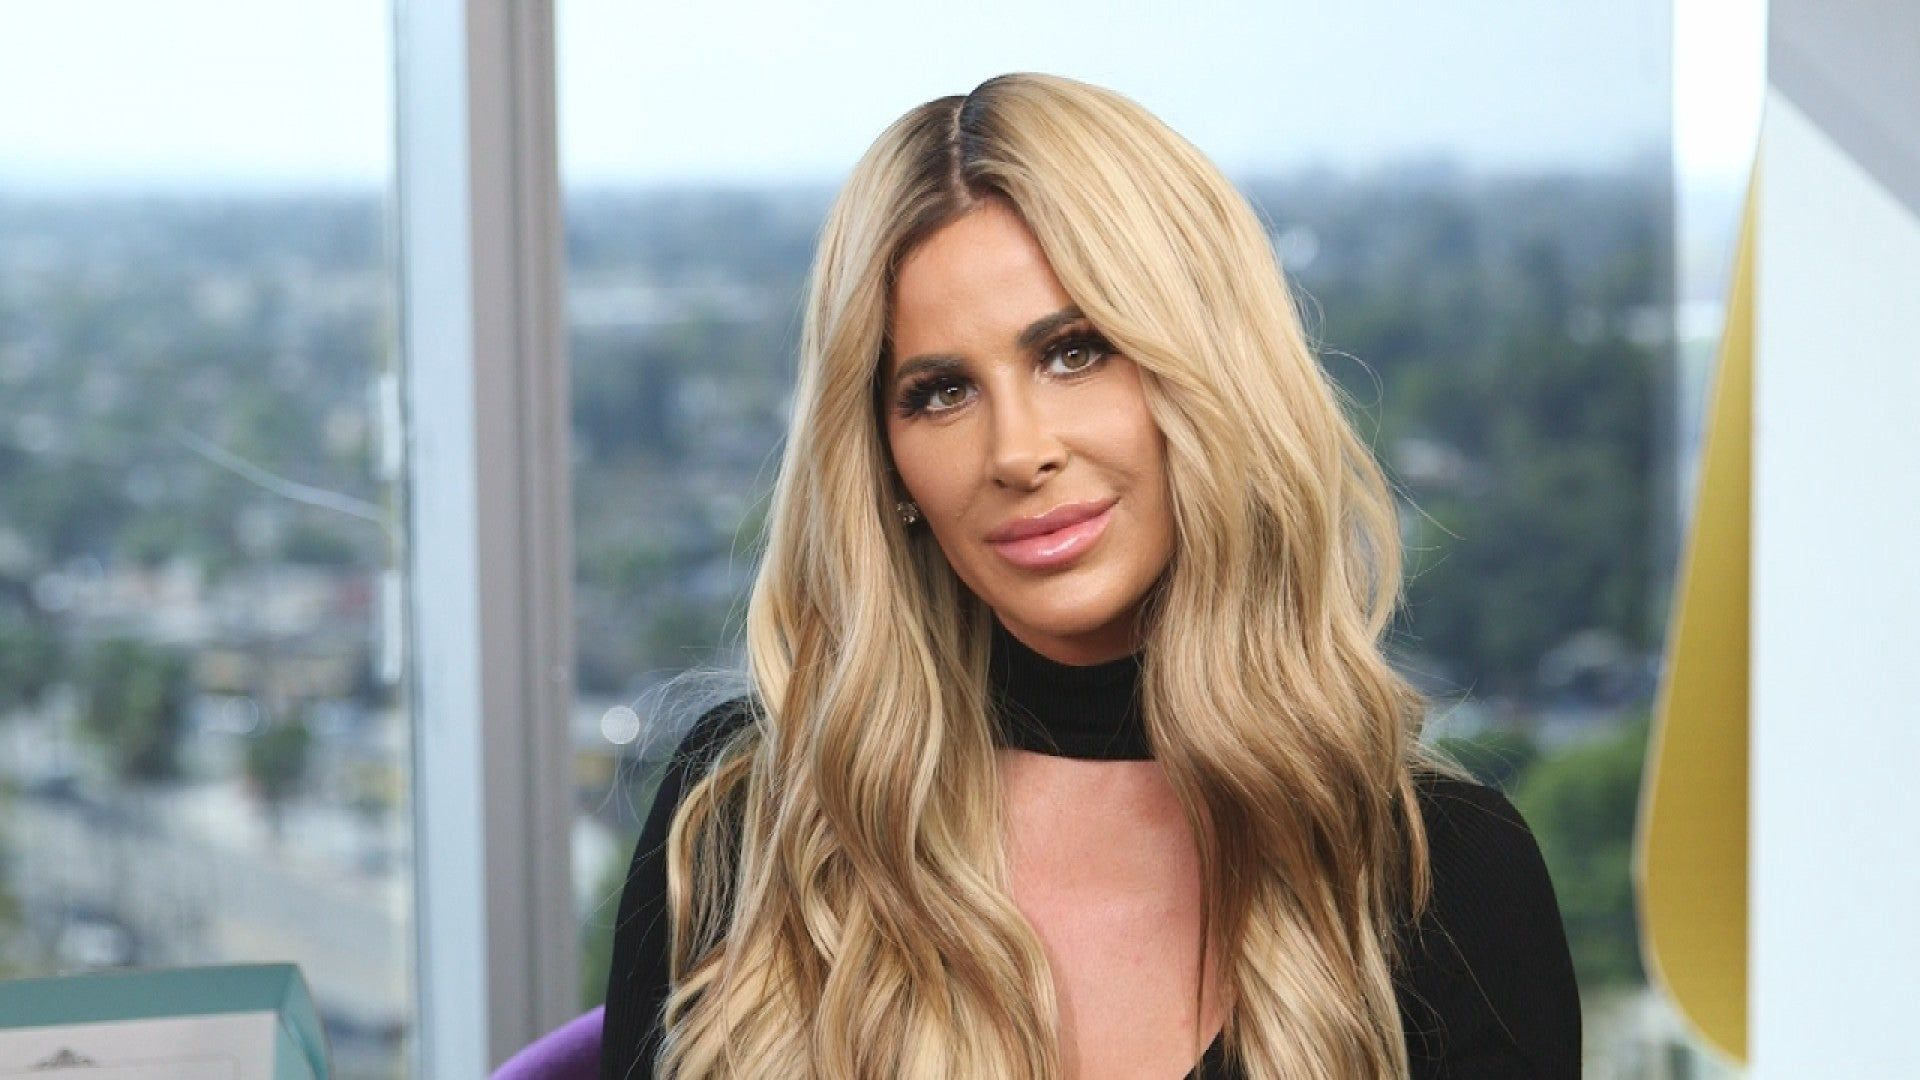 Kim Zolciak Opens Up About Possibly Returning To RHOA - Here's Her Conditions! #Instagram, #KimZolciak, #RealHousewives, #Rhoa celebrityinsider.org #Entertainment #celebrityinsider #celebritynews #celebrities #celebrity